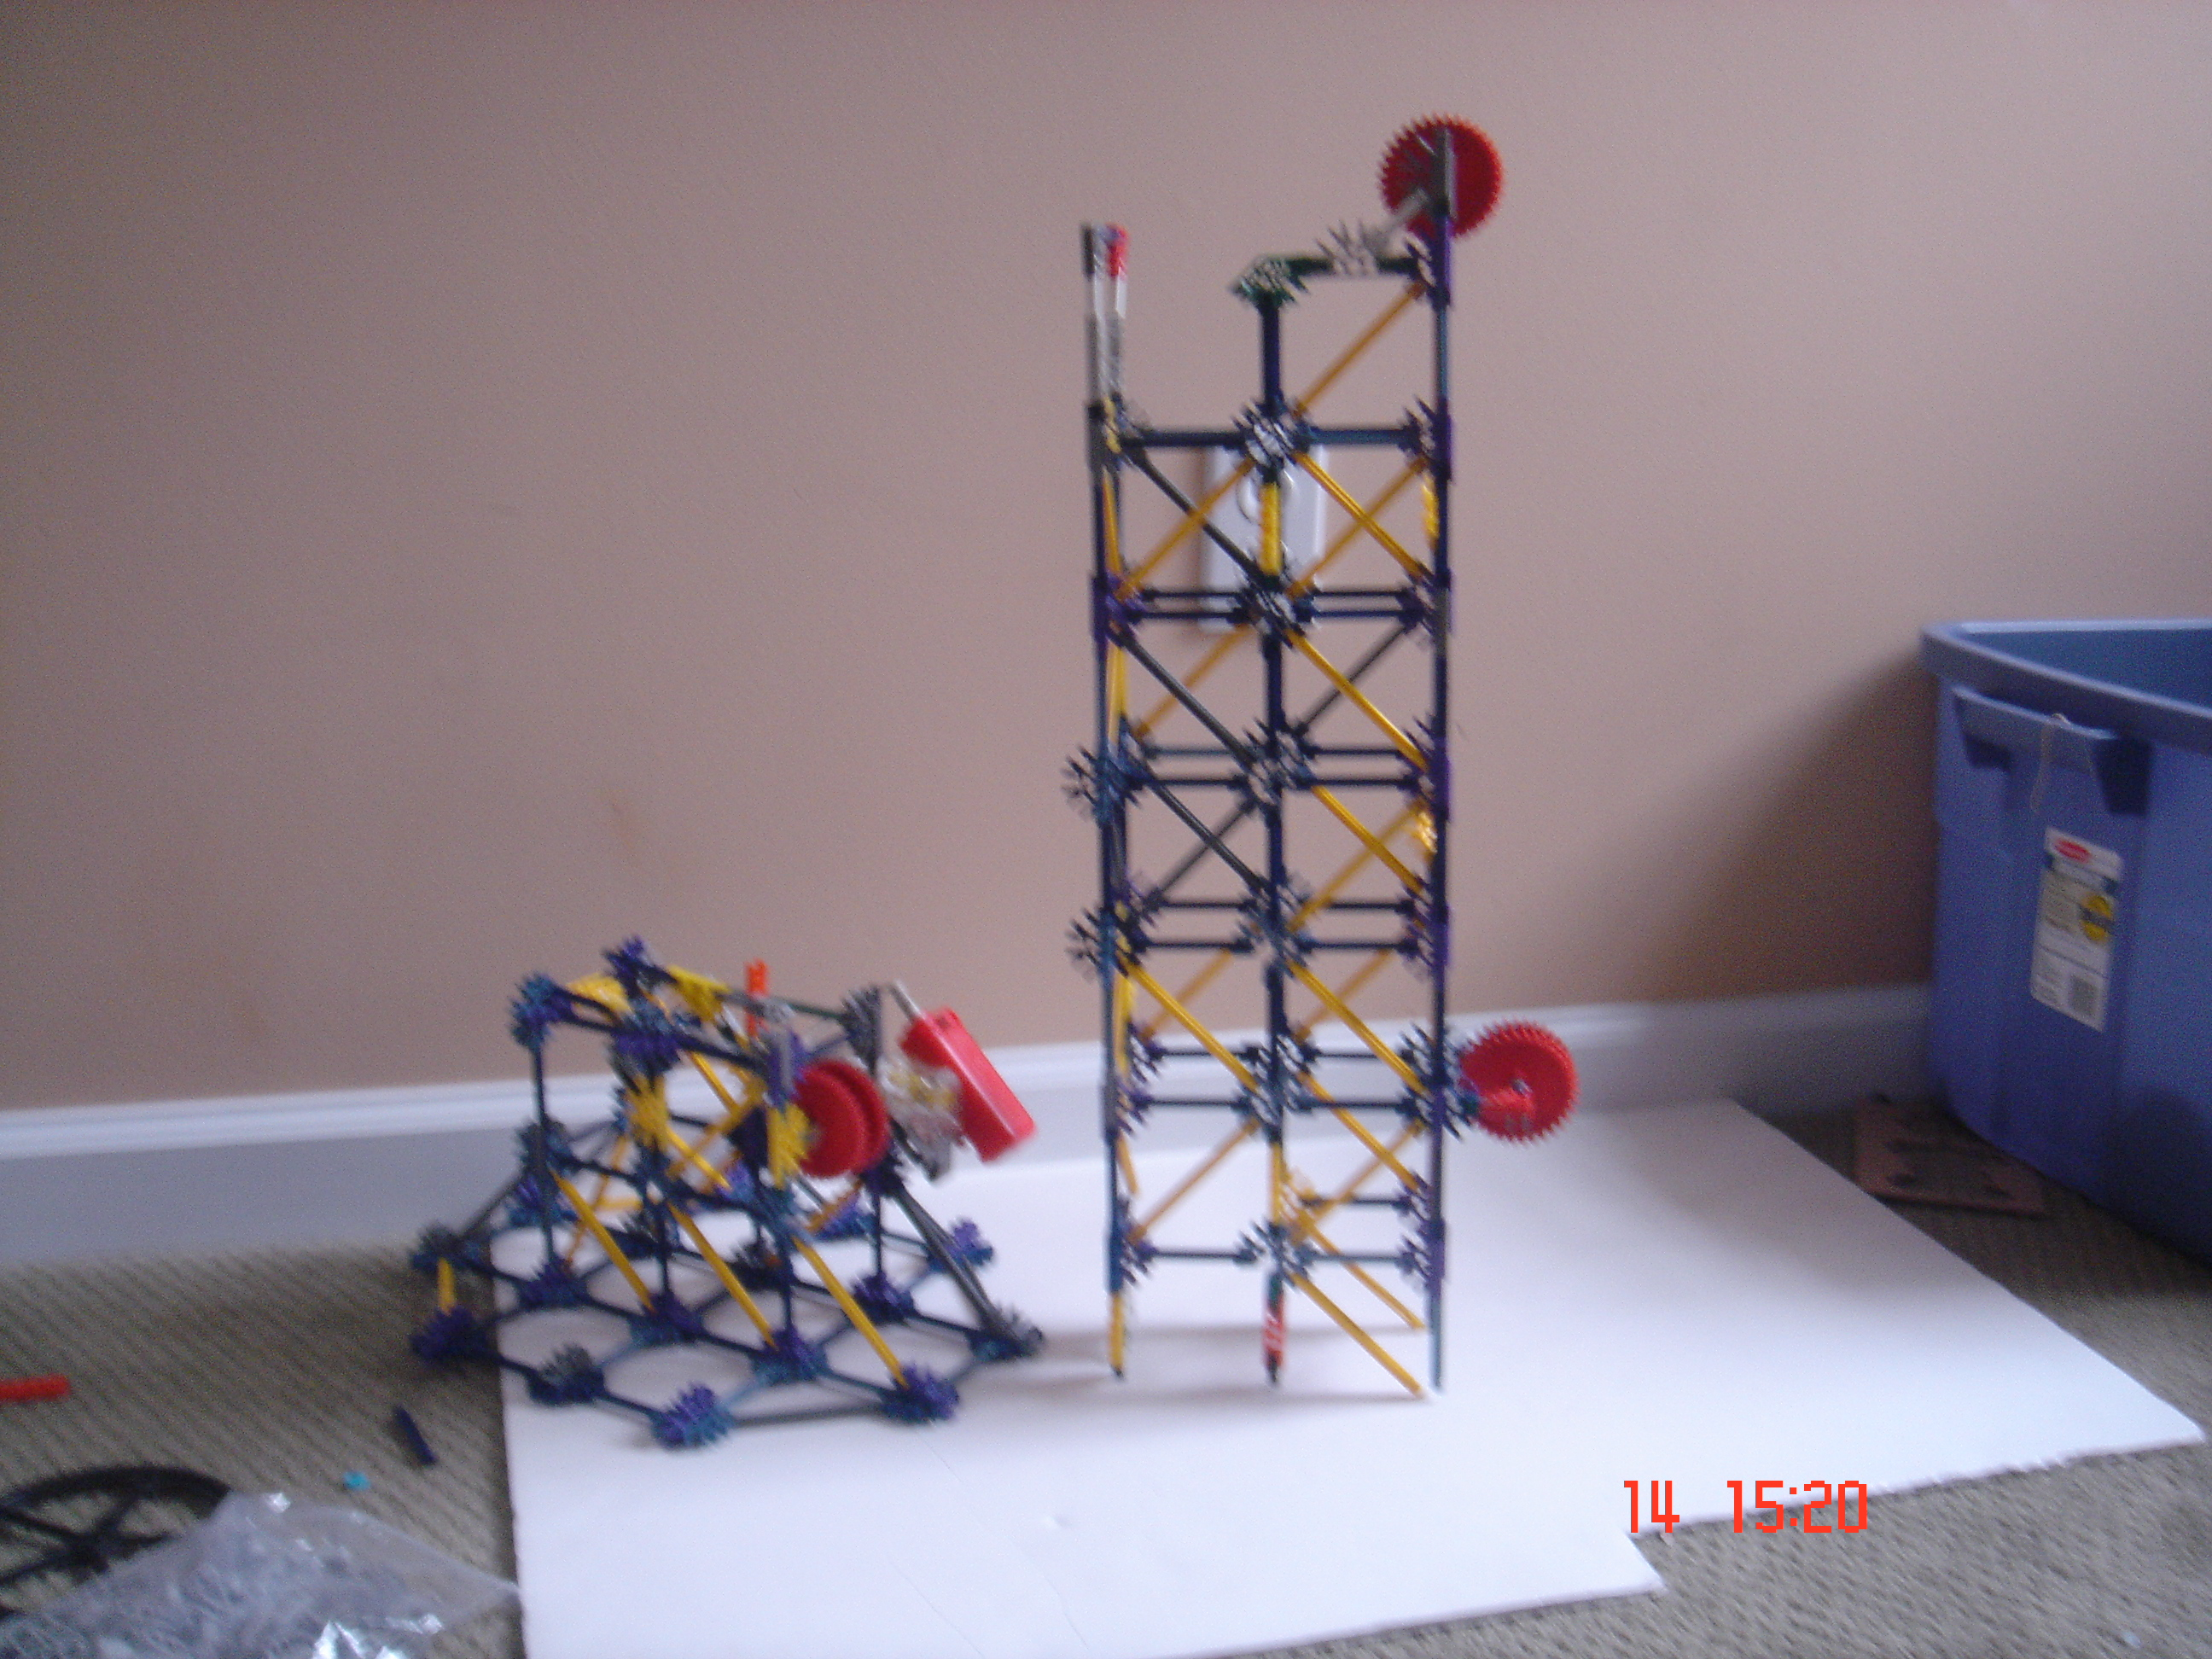 Picture of The Structure, Part 2:  the Tower